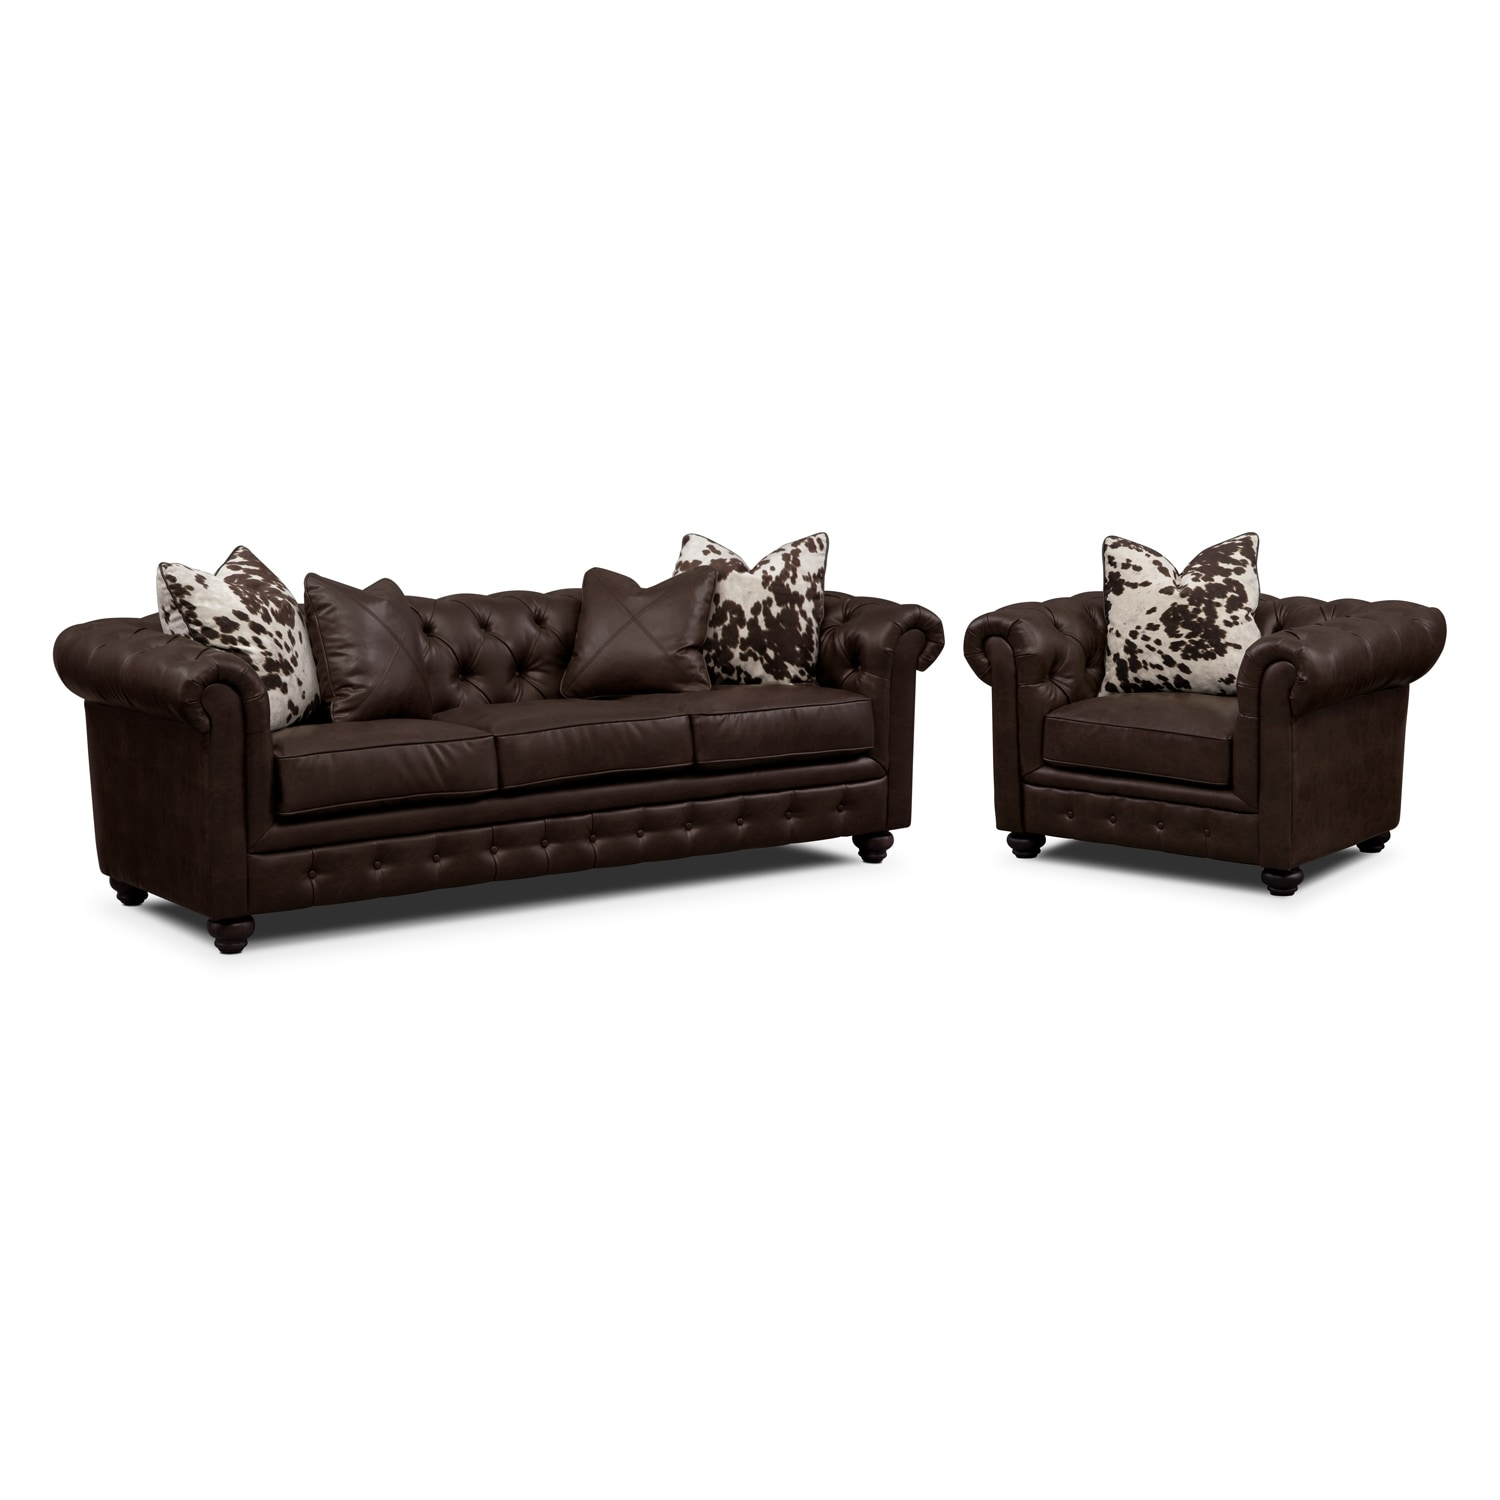 Living Room Furniture - Madeline Chocolate 2 Pc. Living Room Set w/ Chair